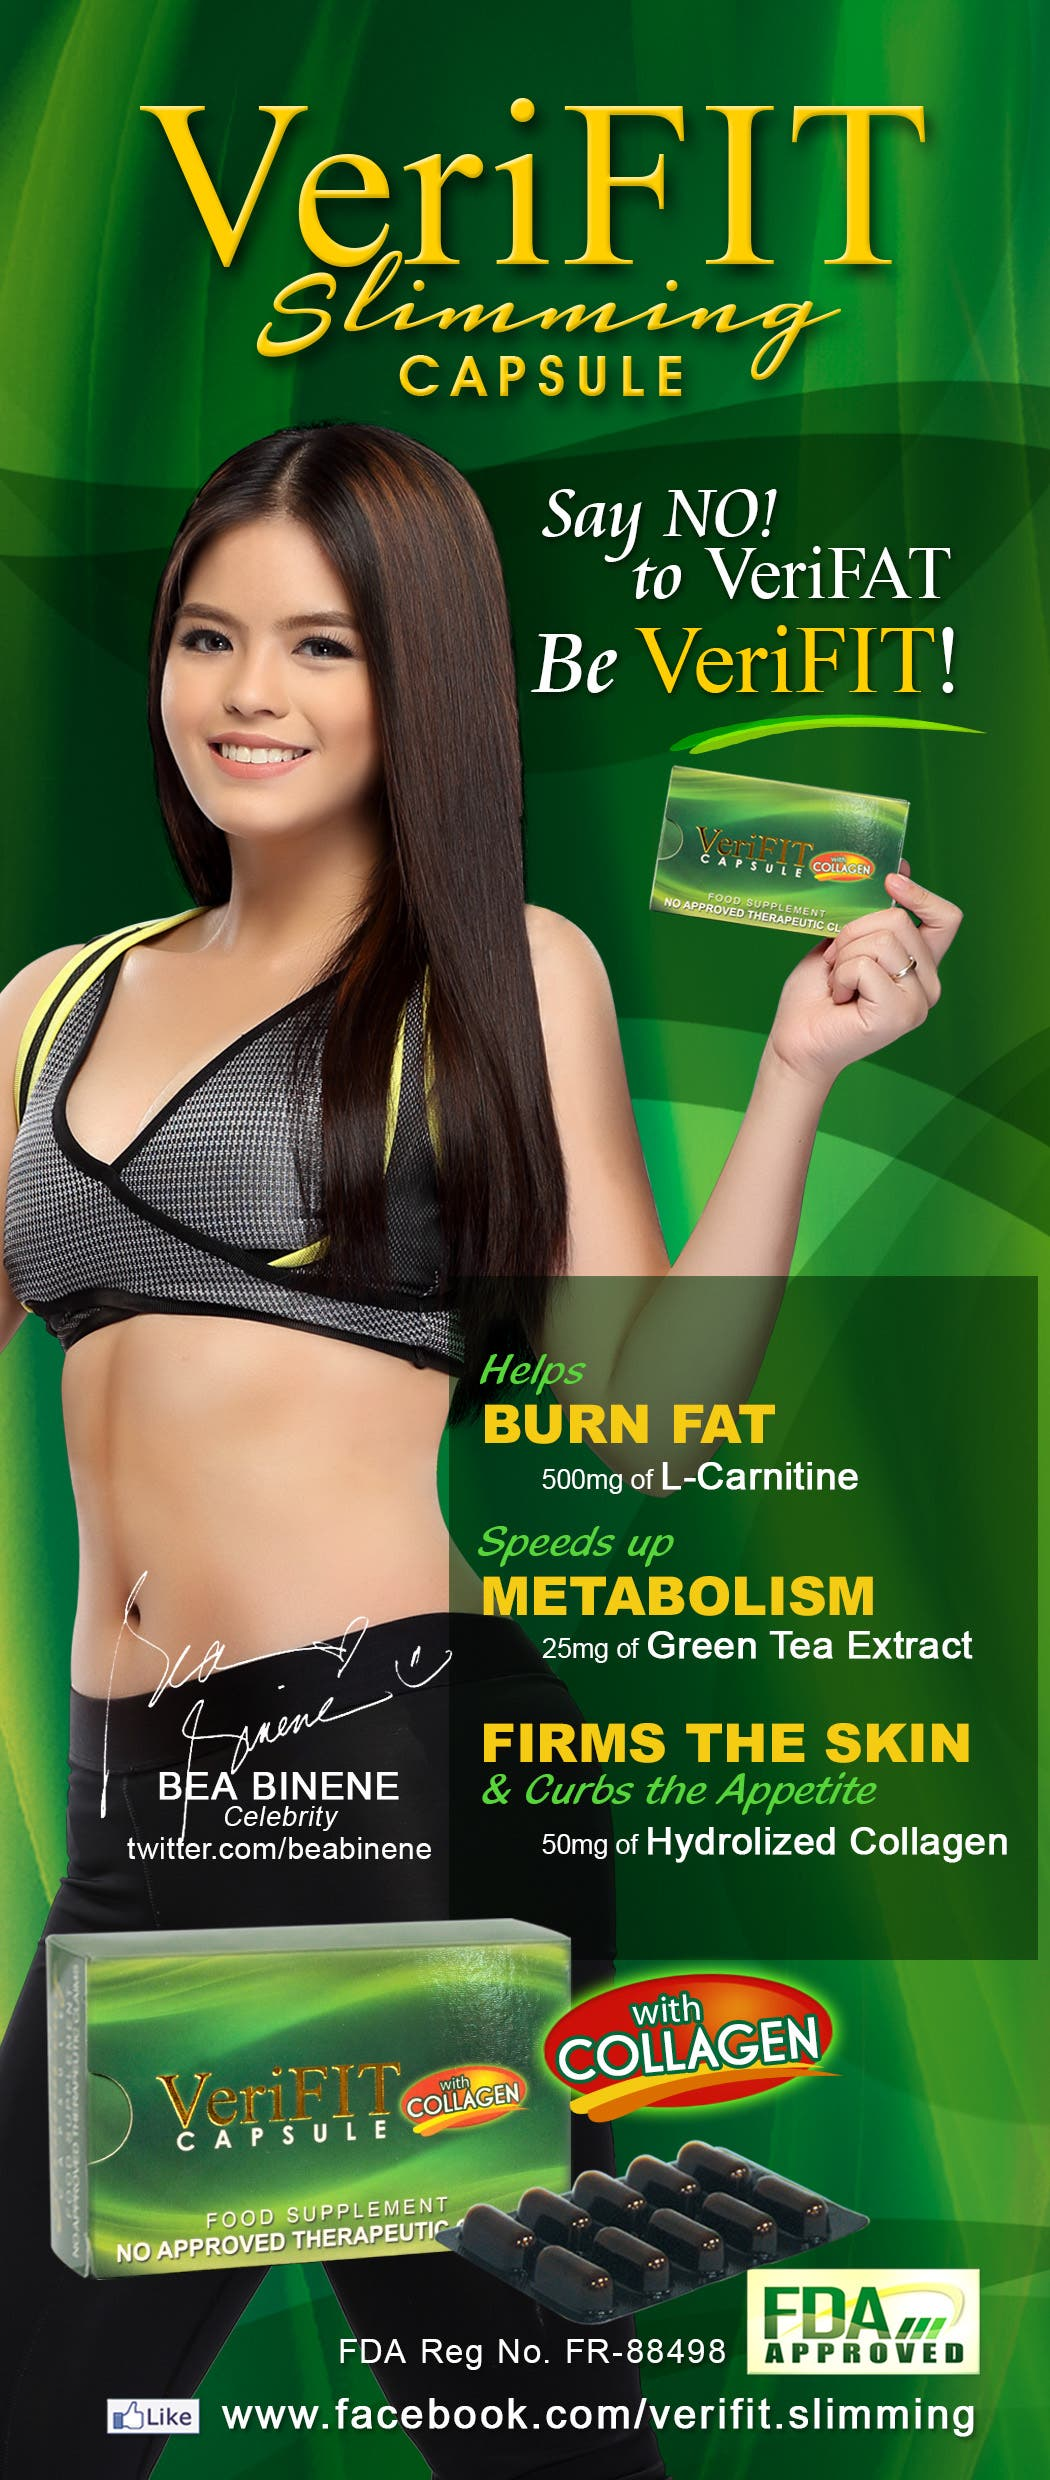 Easiest weight loss plan evere image 22